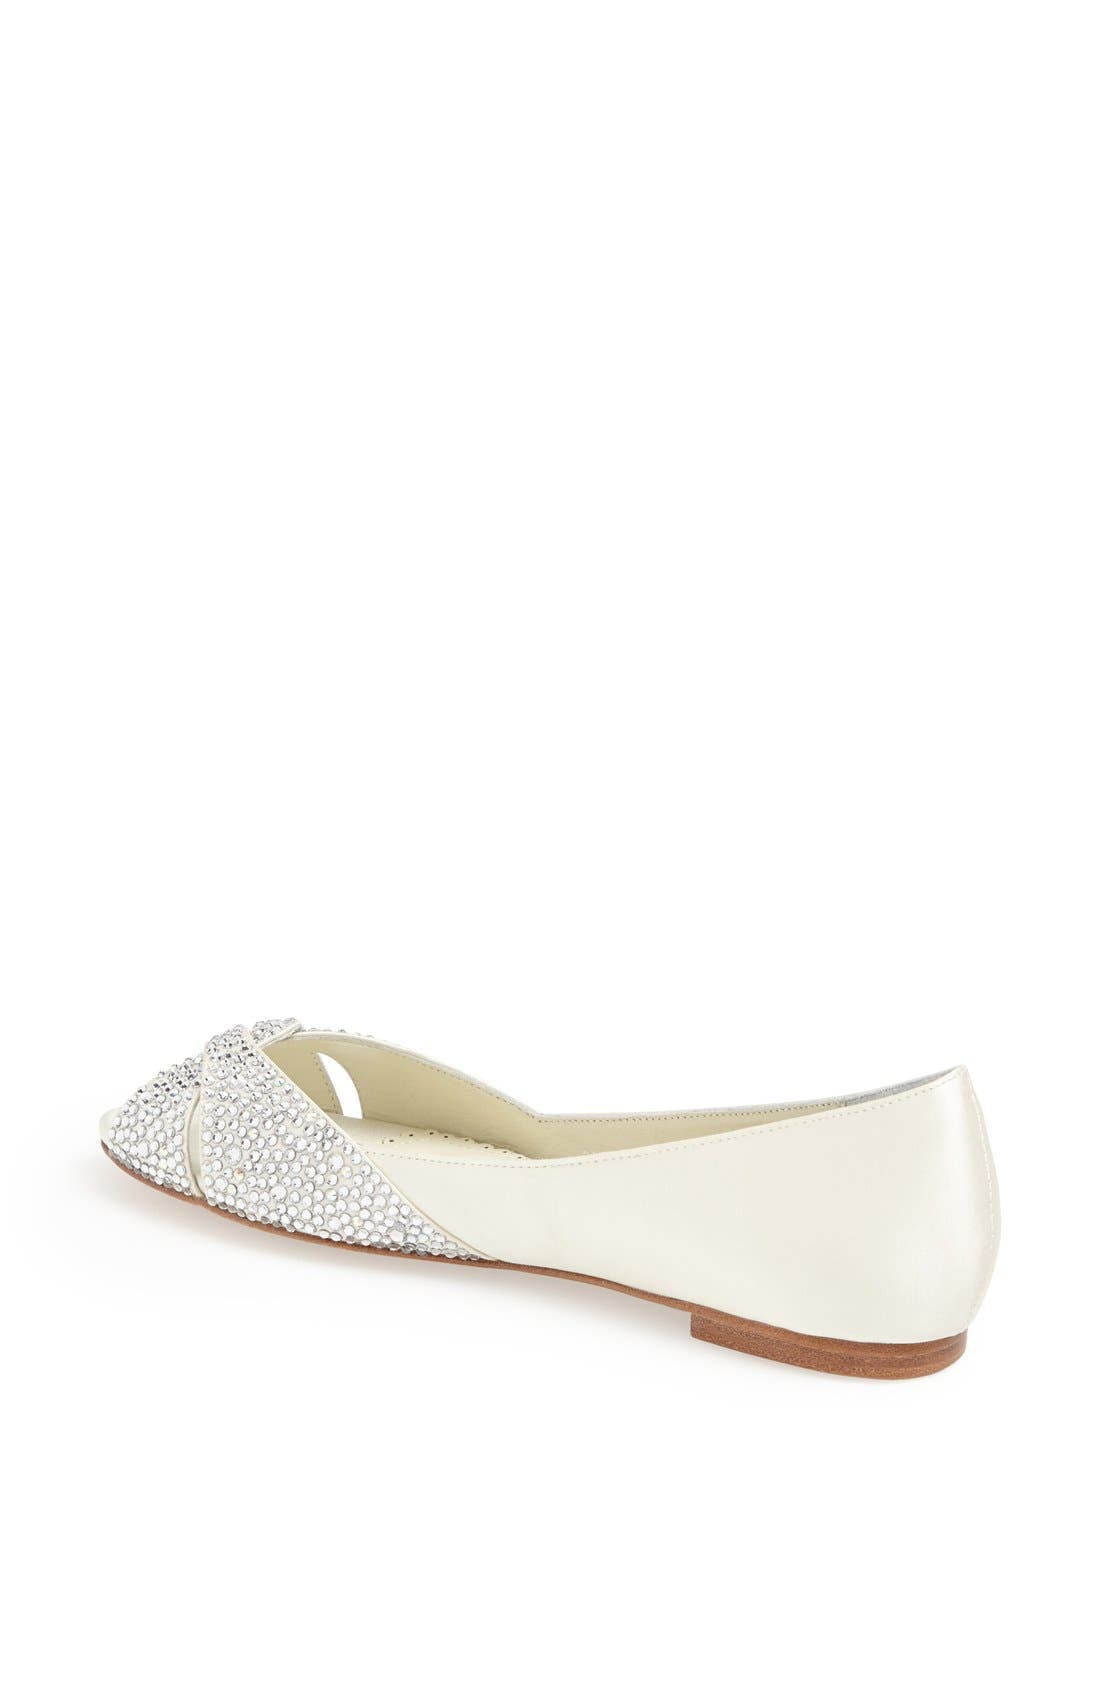 Alternate Image 2  - Benjamin Adams London 'Andie' Crystal Embellished Peep Toe Flat